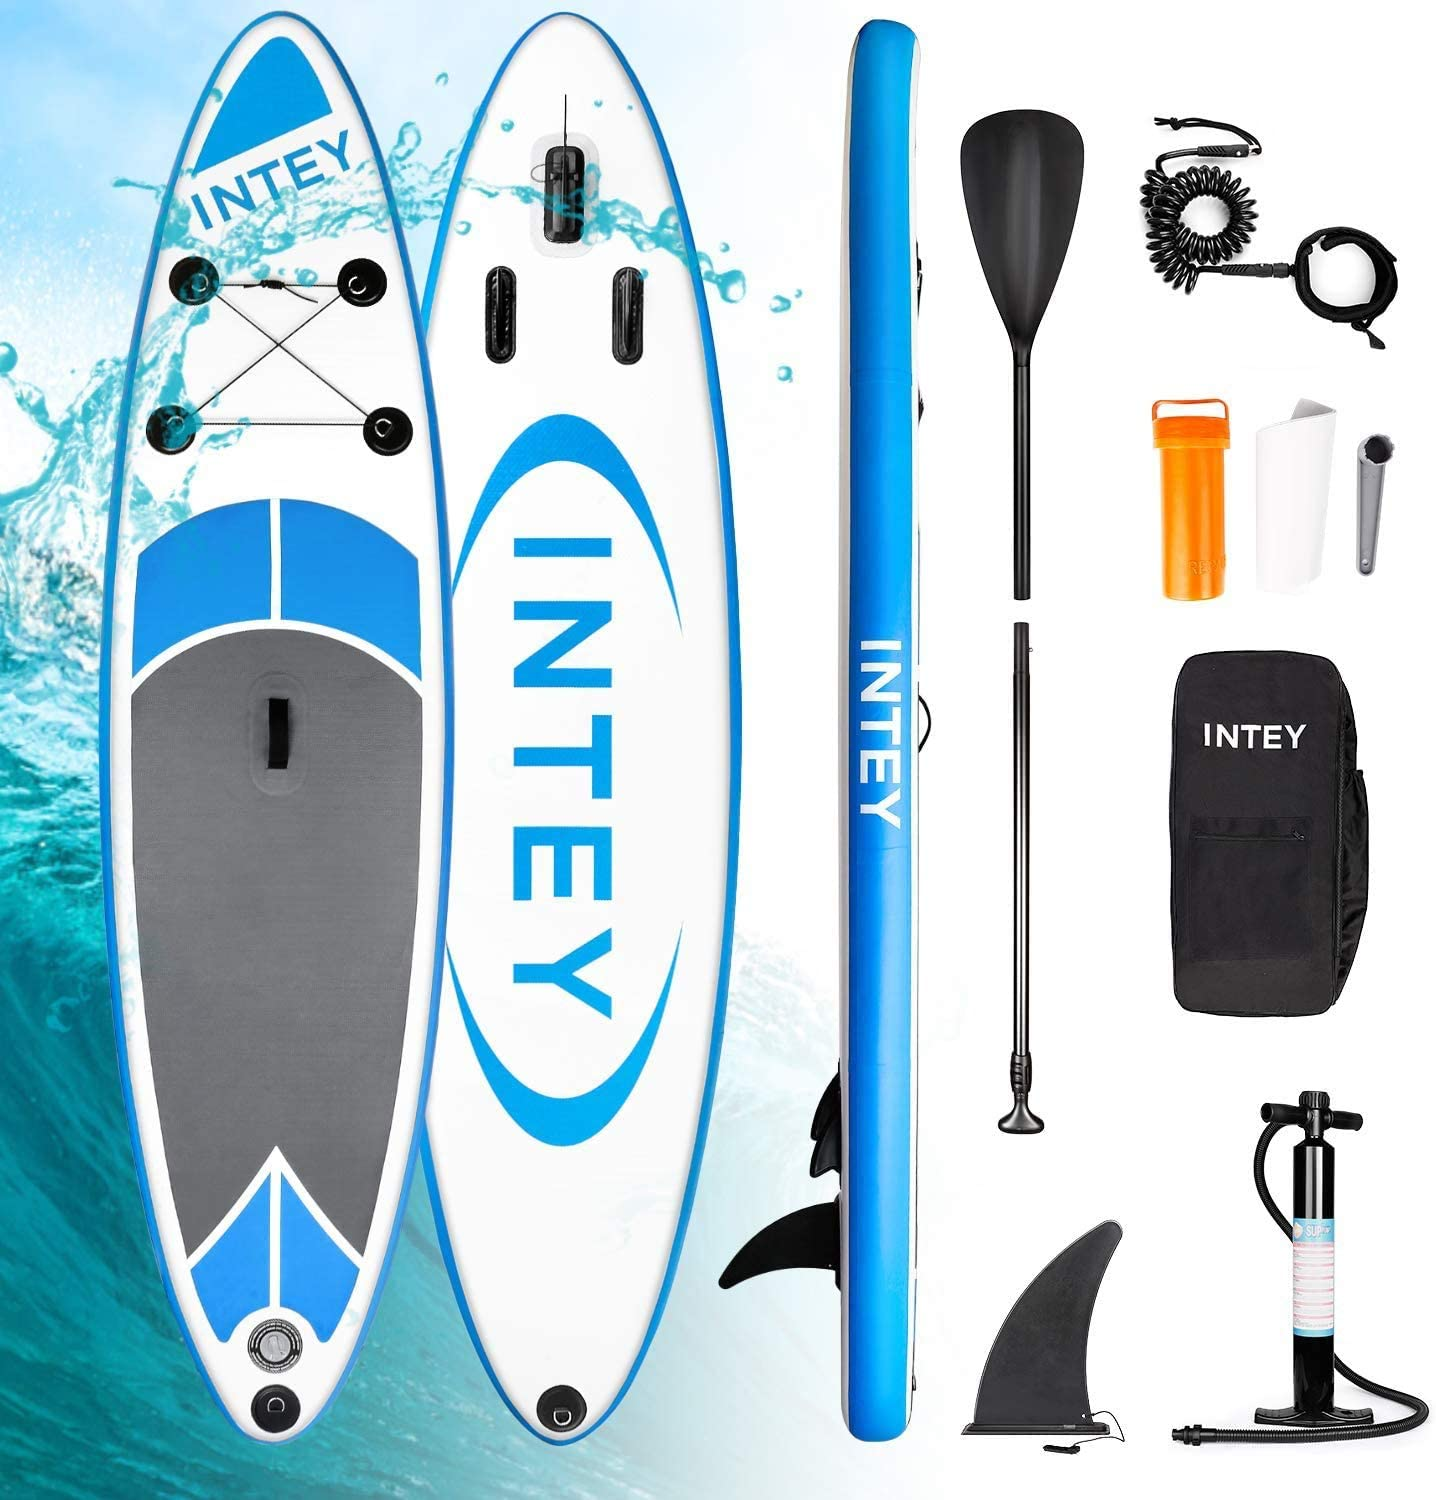 INTEY Tabla Paddle Surf Hinchable, Sup Paddle Remo Ajustable, Tabla Stand Up Paddle Board, Bomba de Doble, Seguridad